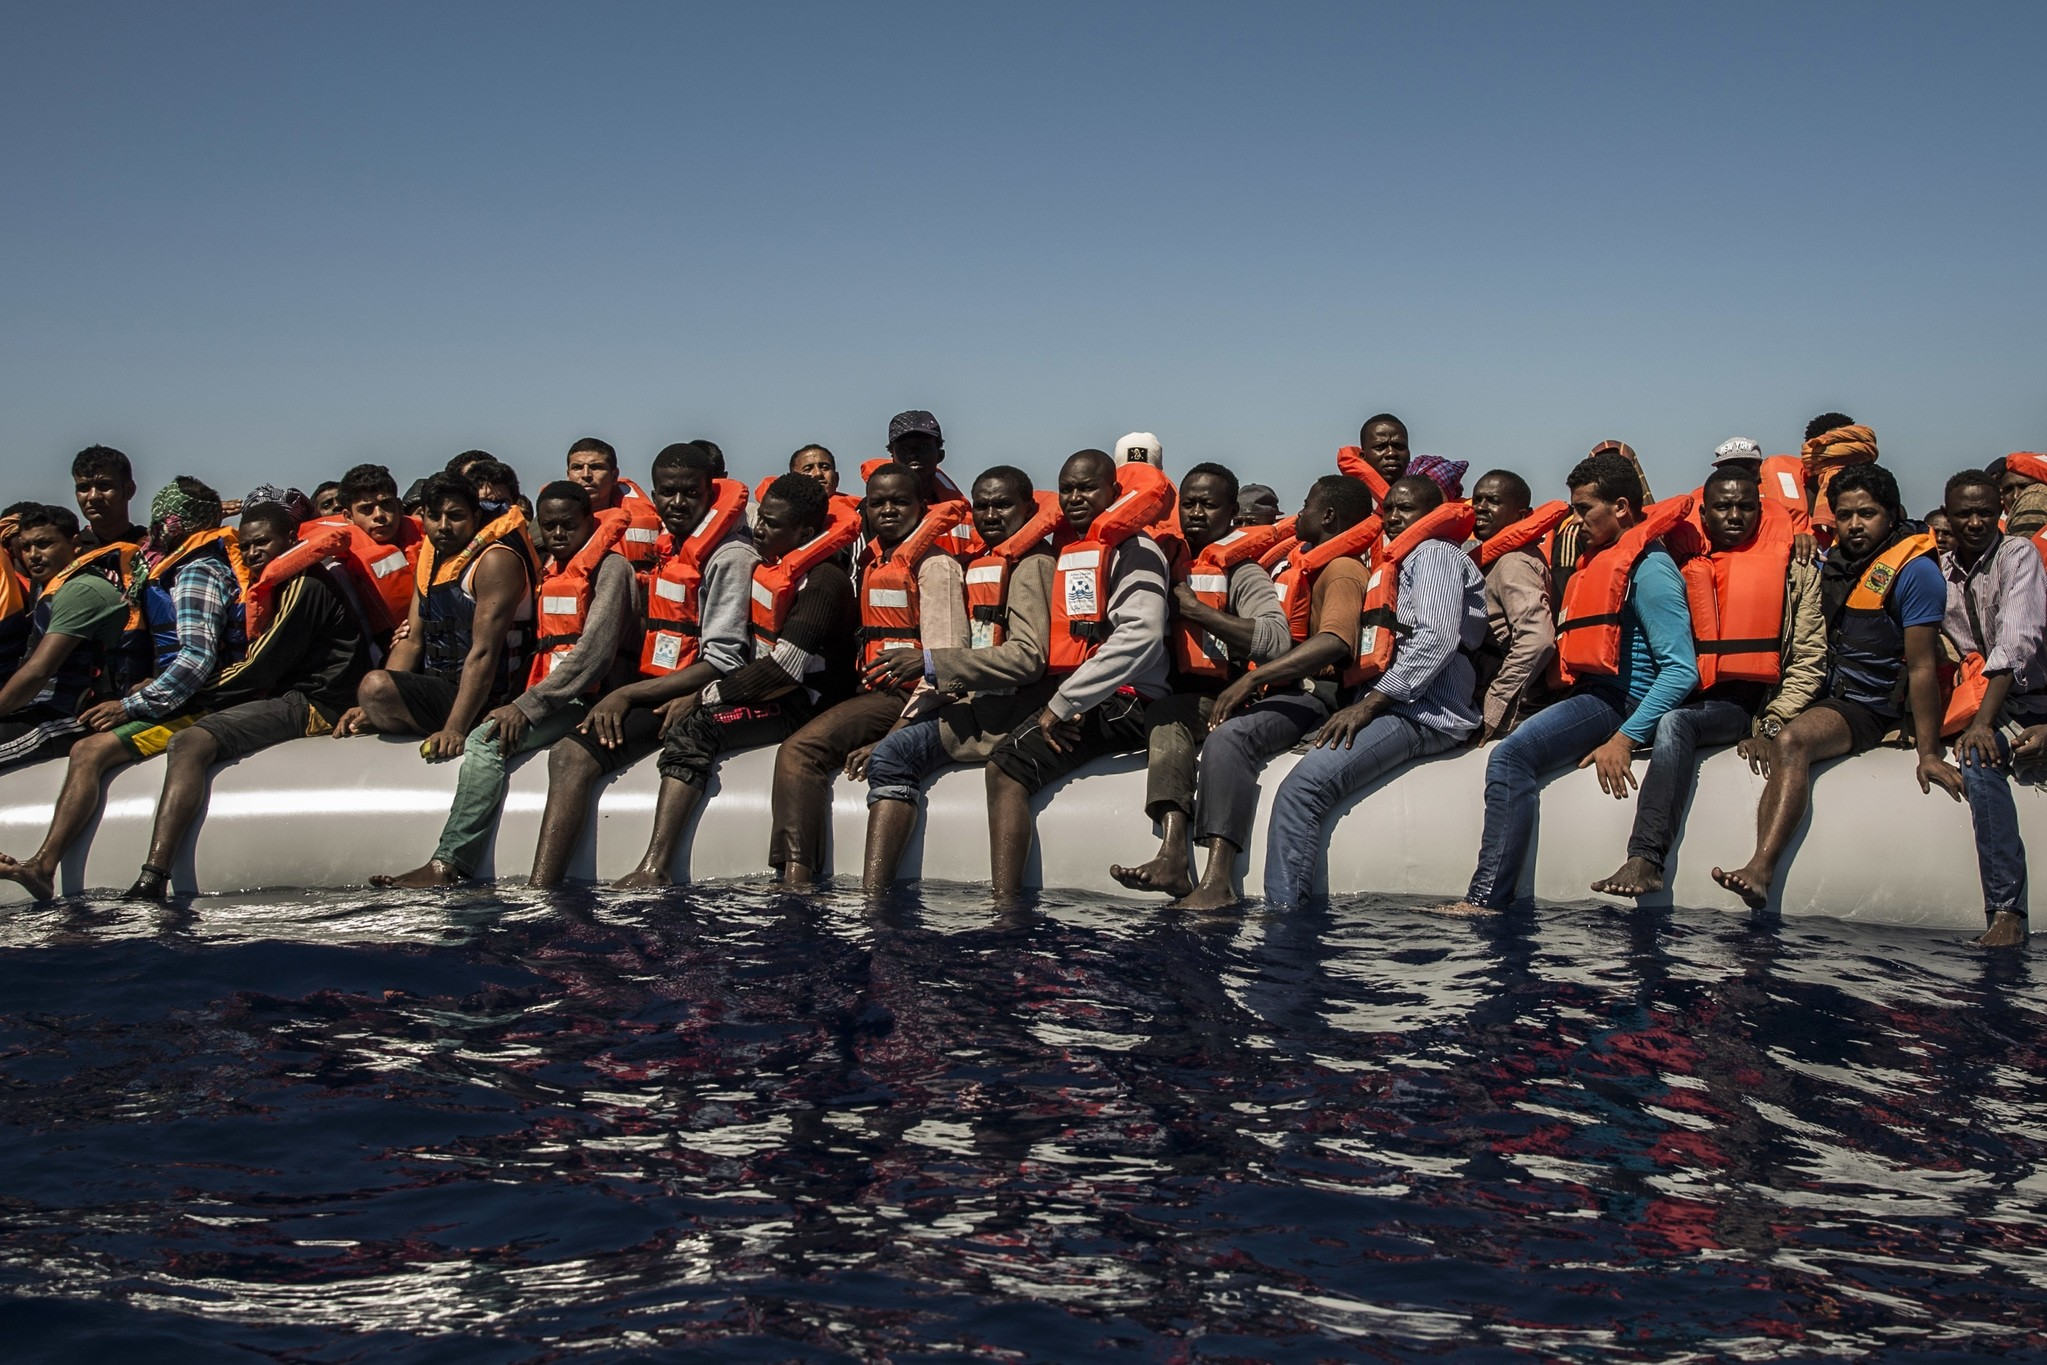 In this Tuesday July 19, 2016 photo, refugees and migrants from Eritrea, Mali, Bangladesh and other countries wait on board a dinghy to be rescued in the Mediterranean Sea, 27 kilometers (17 miles) north of Sabratha, Libya. (AP Photo)